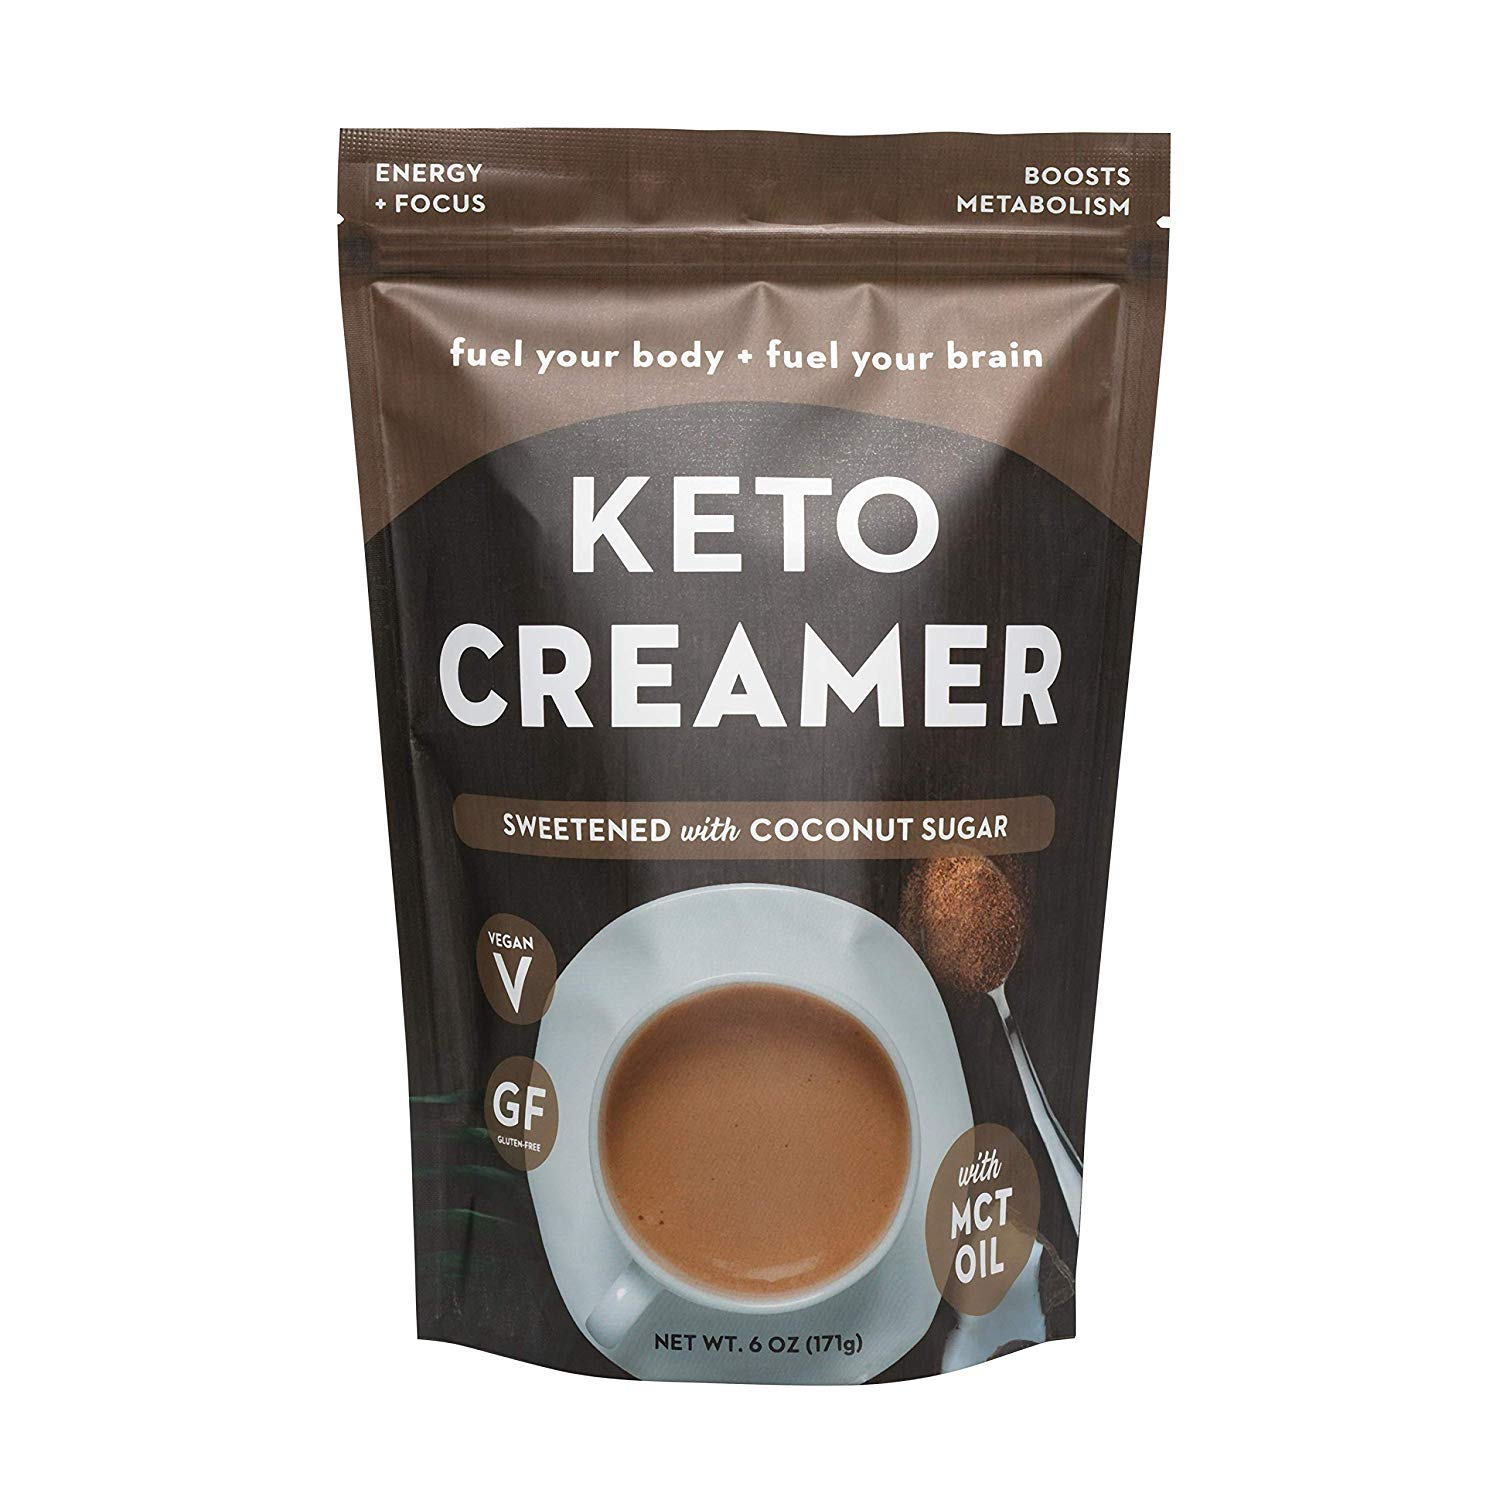 360 Nutrition KETO Creamer With MCT Oil | Sweetened Coconut Sugar | Dairy Free Coffee Creamer Milk Substitute | Weight Loss, Energy, Fat Loss, Supports Ketosis… 71V8agMZ3tL